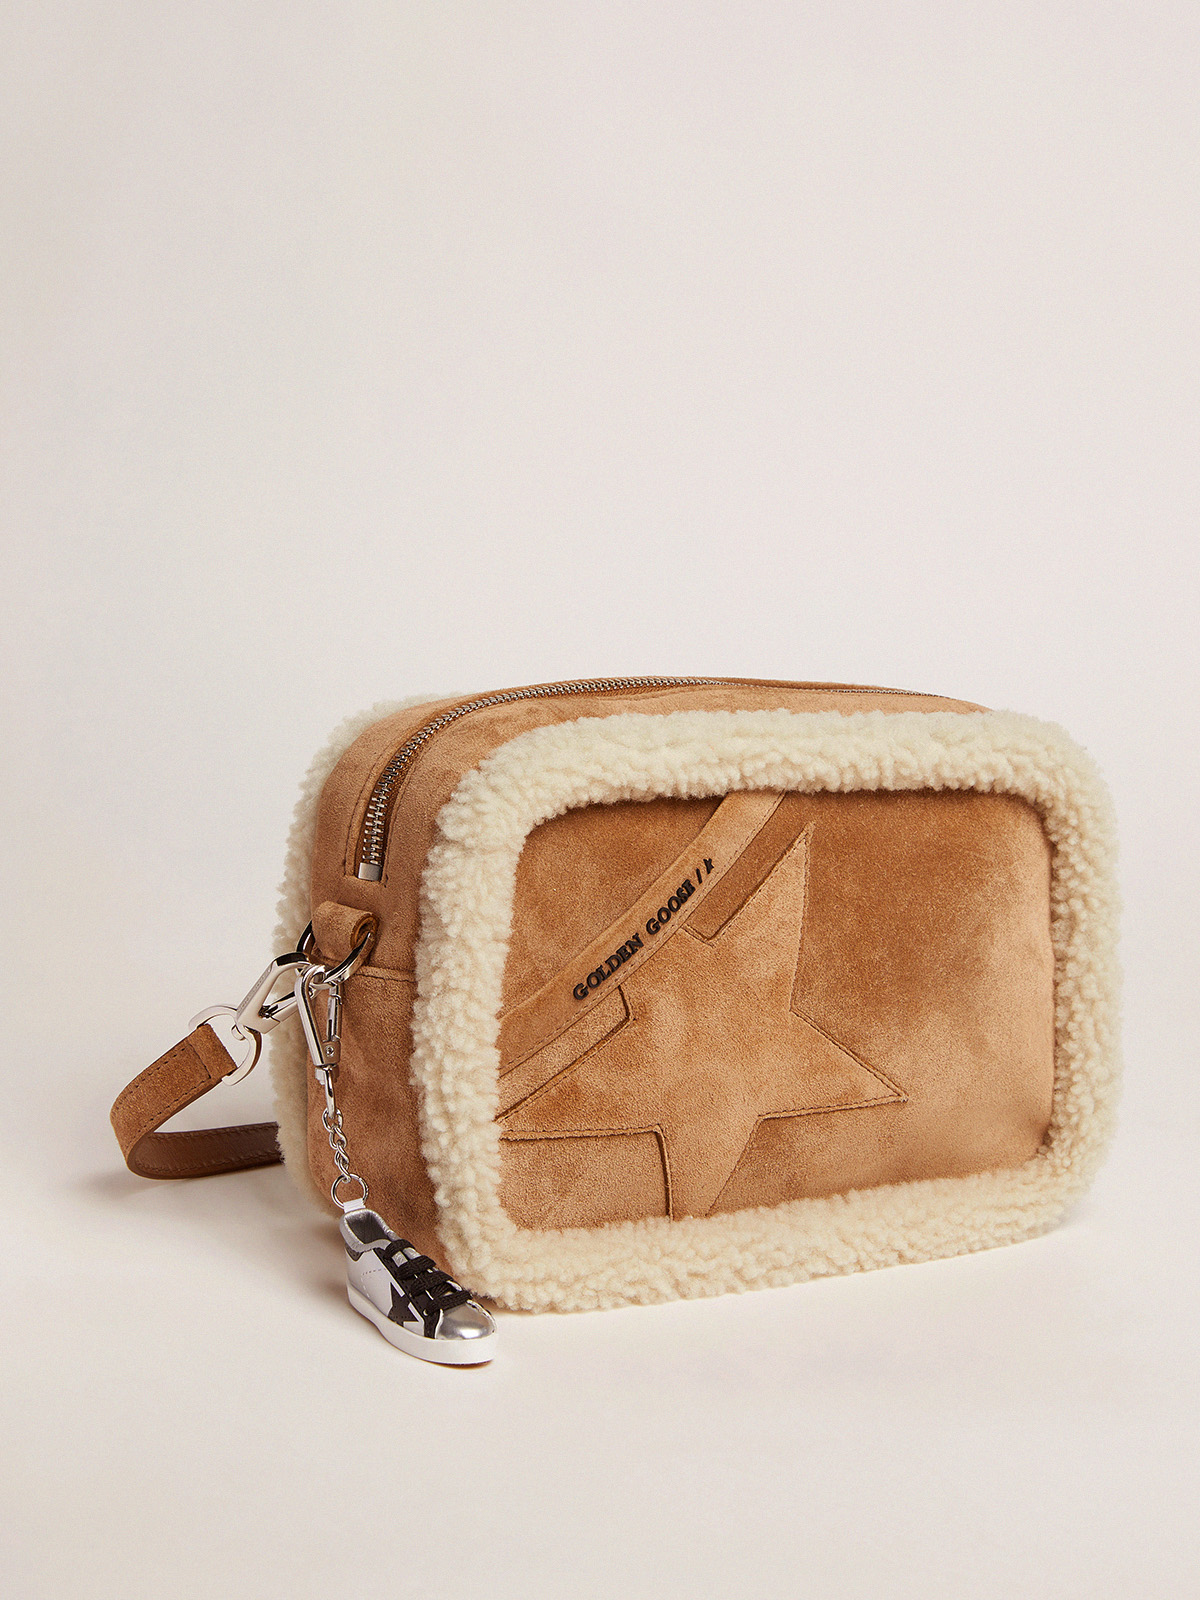 Golden Goose - Star Bag made of suede leather with shearling edging in